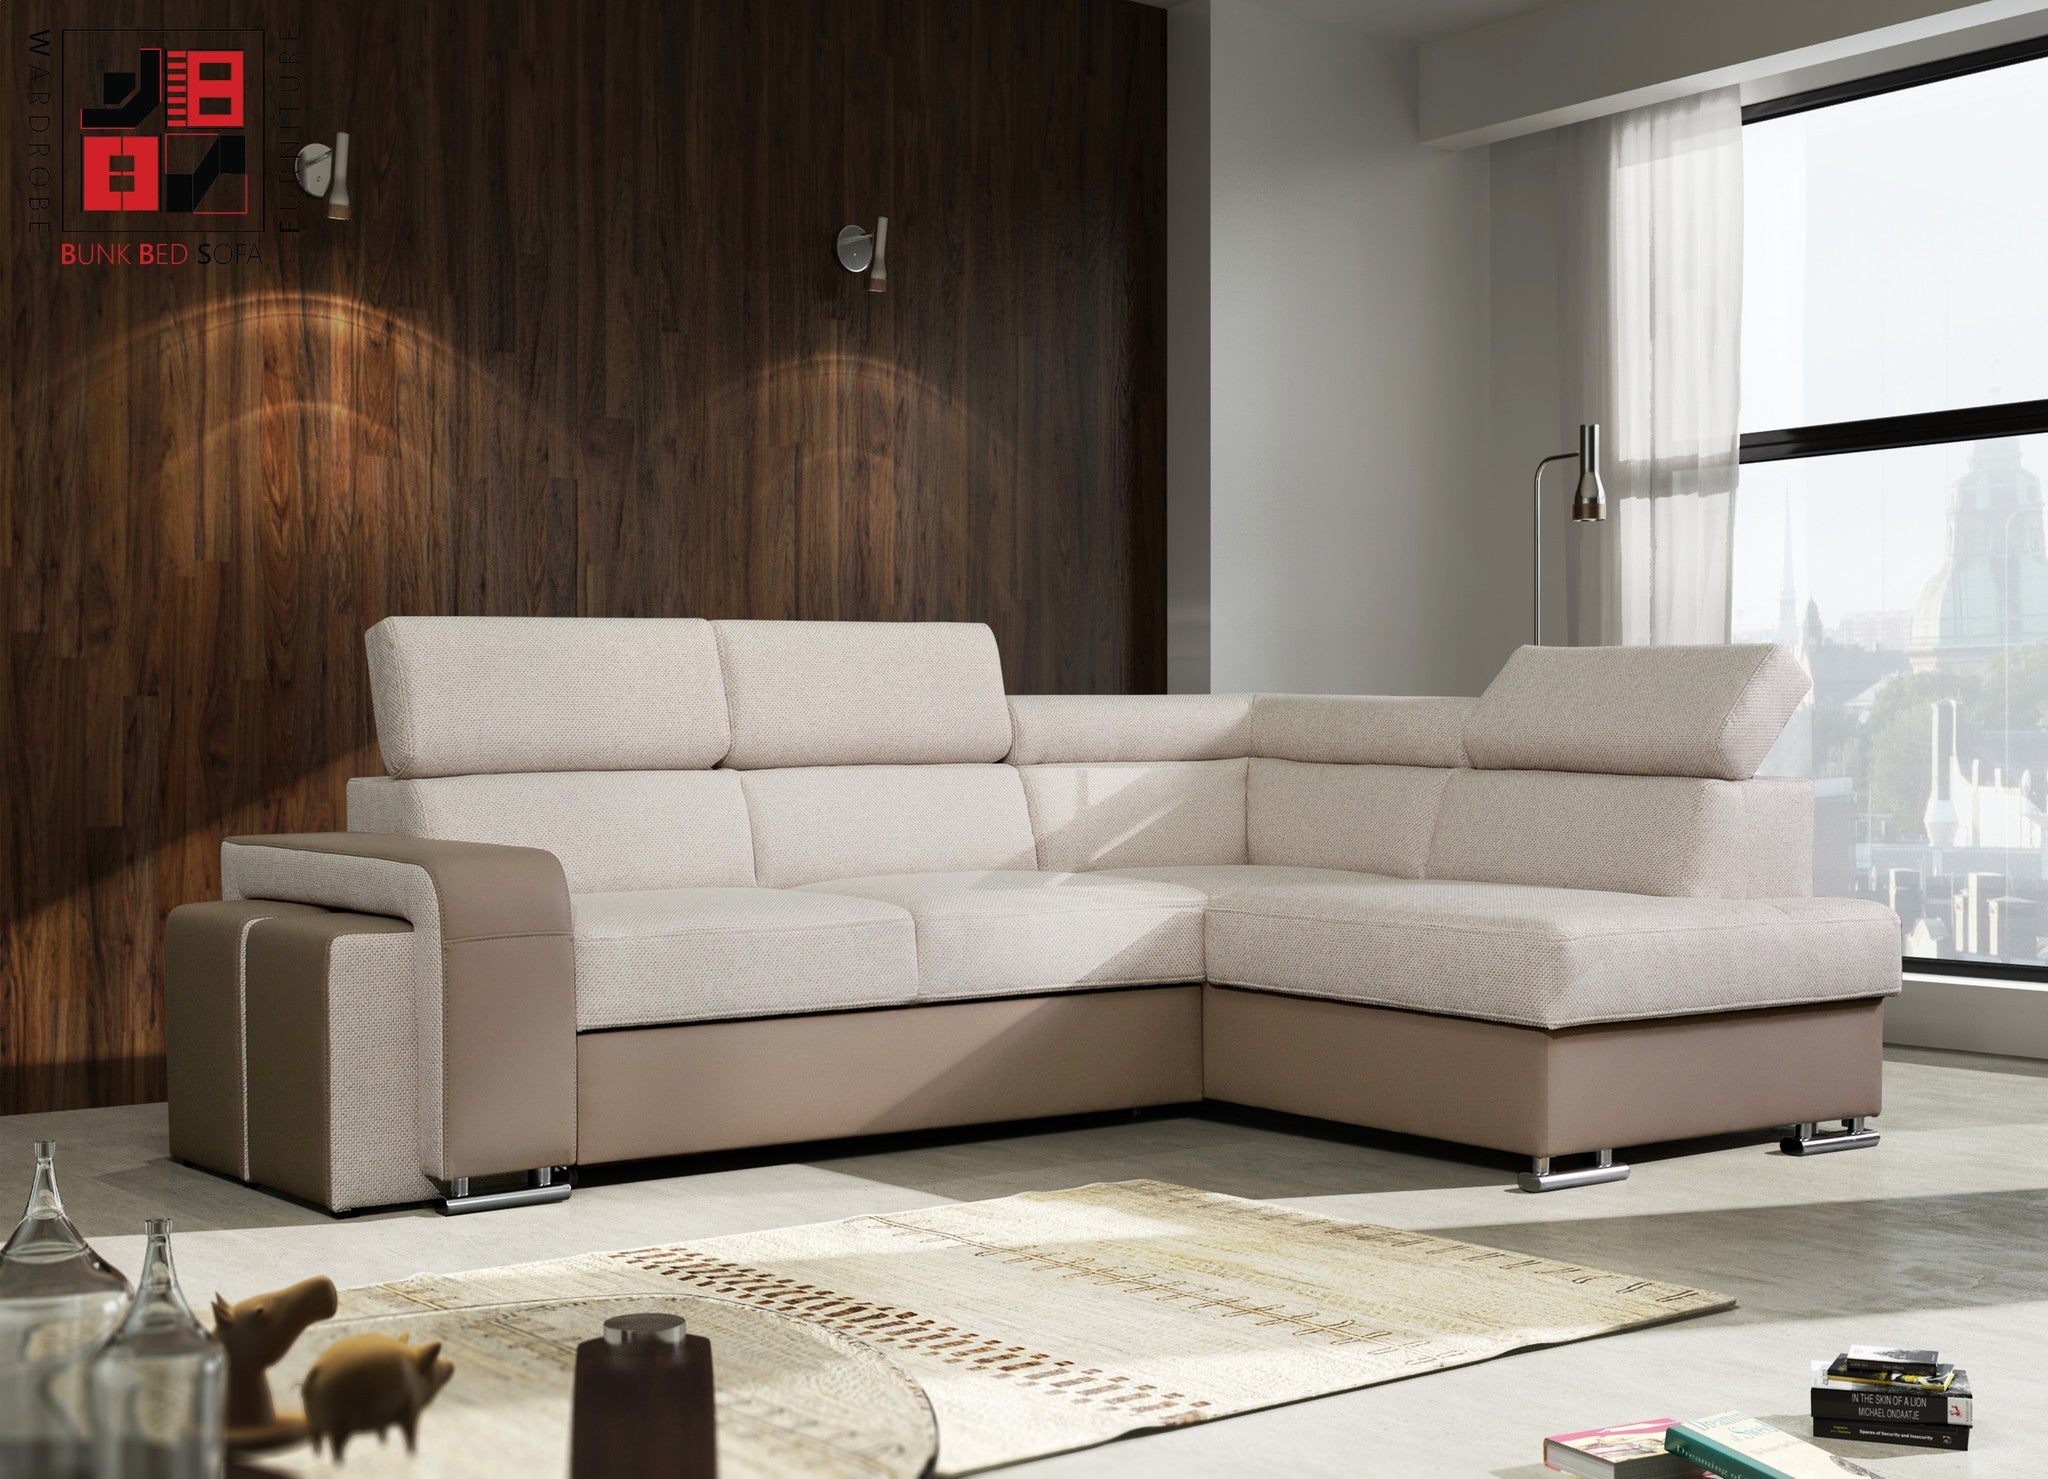 AGORA Extraordinary corner sofa bed with additional pouffes &gt